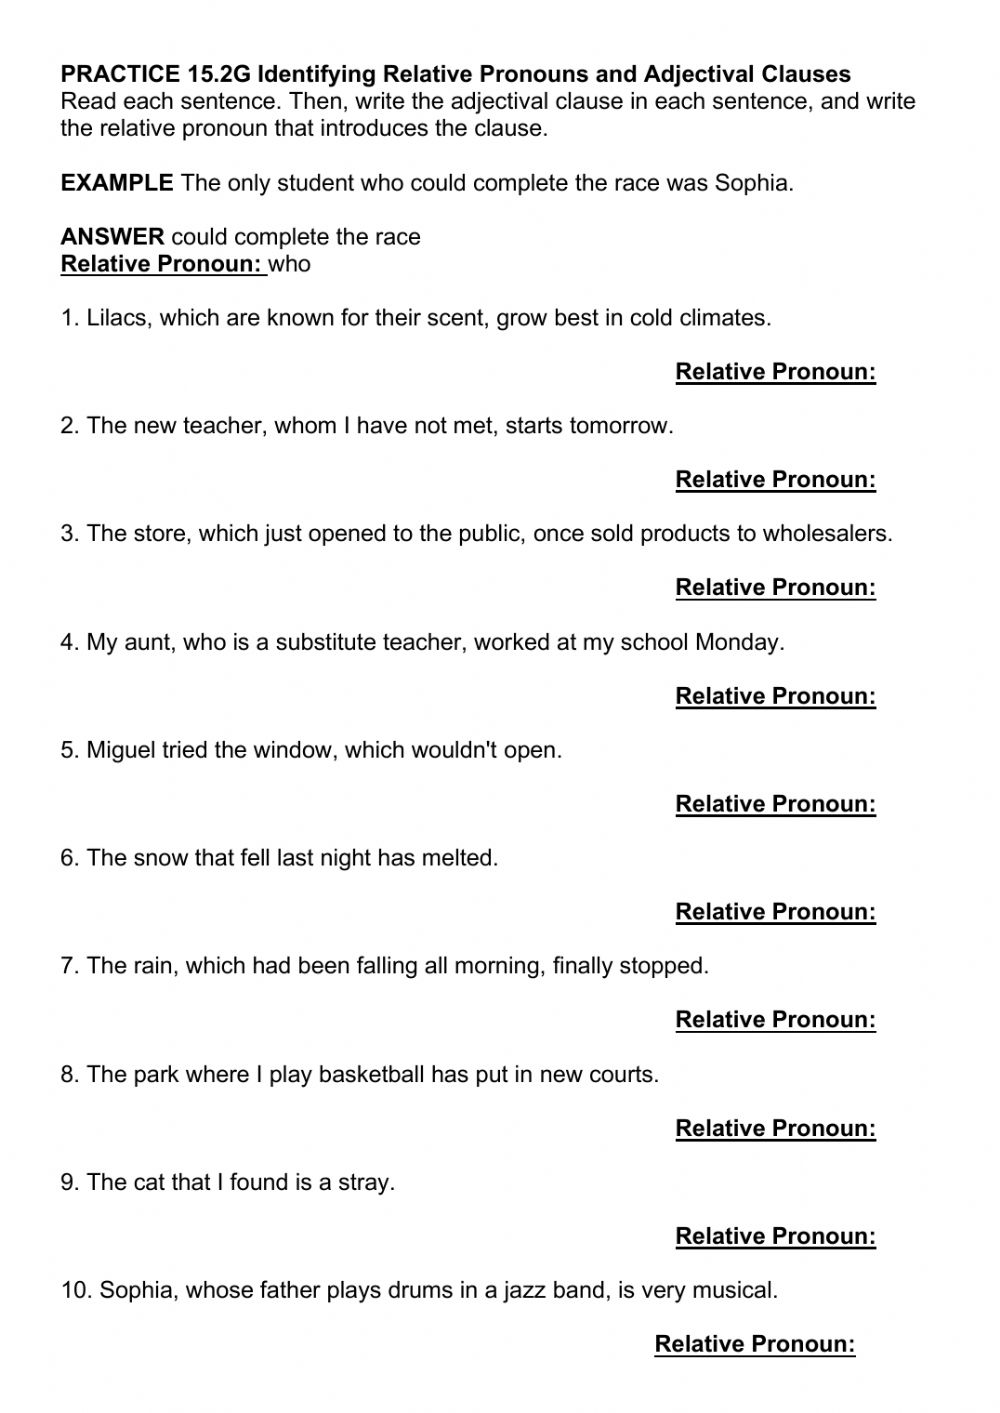 medium resolution of PRACTICE 15.2G Identifying Relative Pronouns and Adjectival Clauses  worksheet